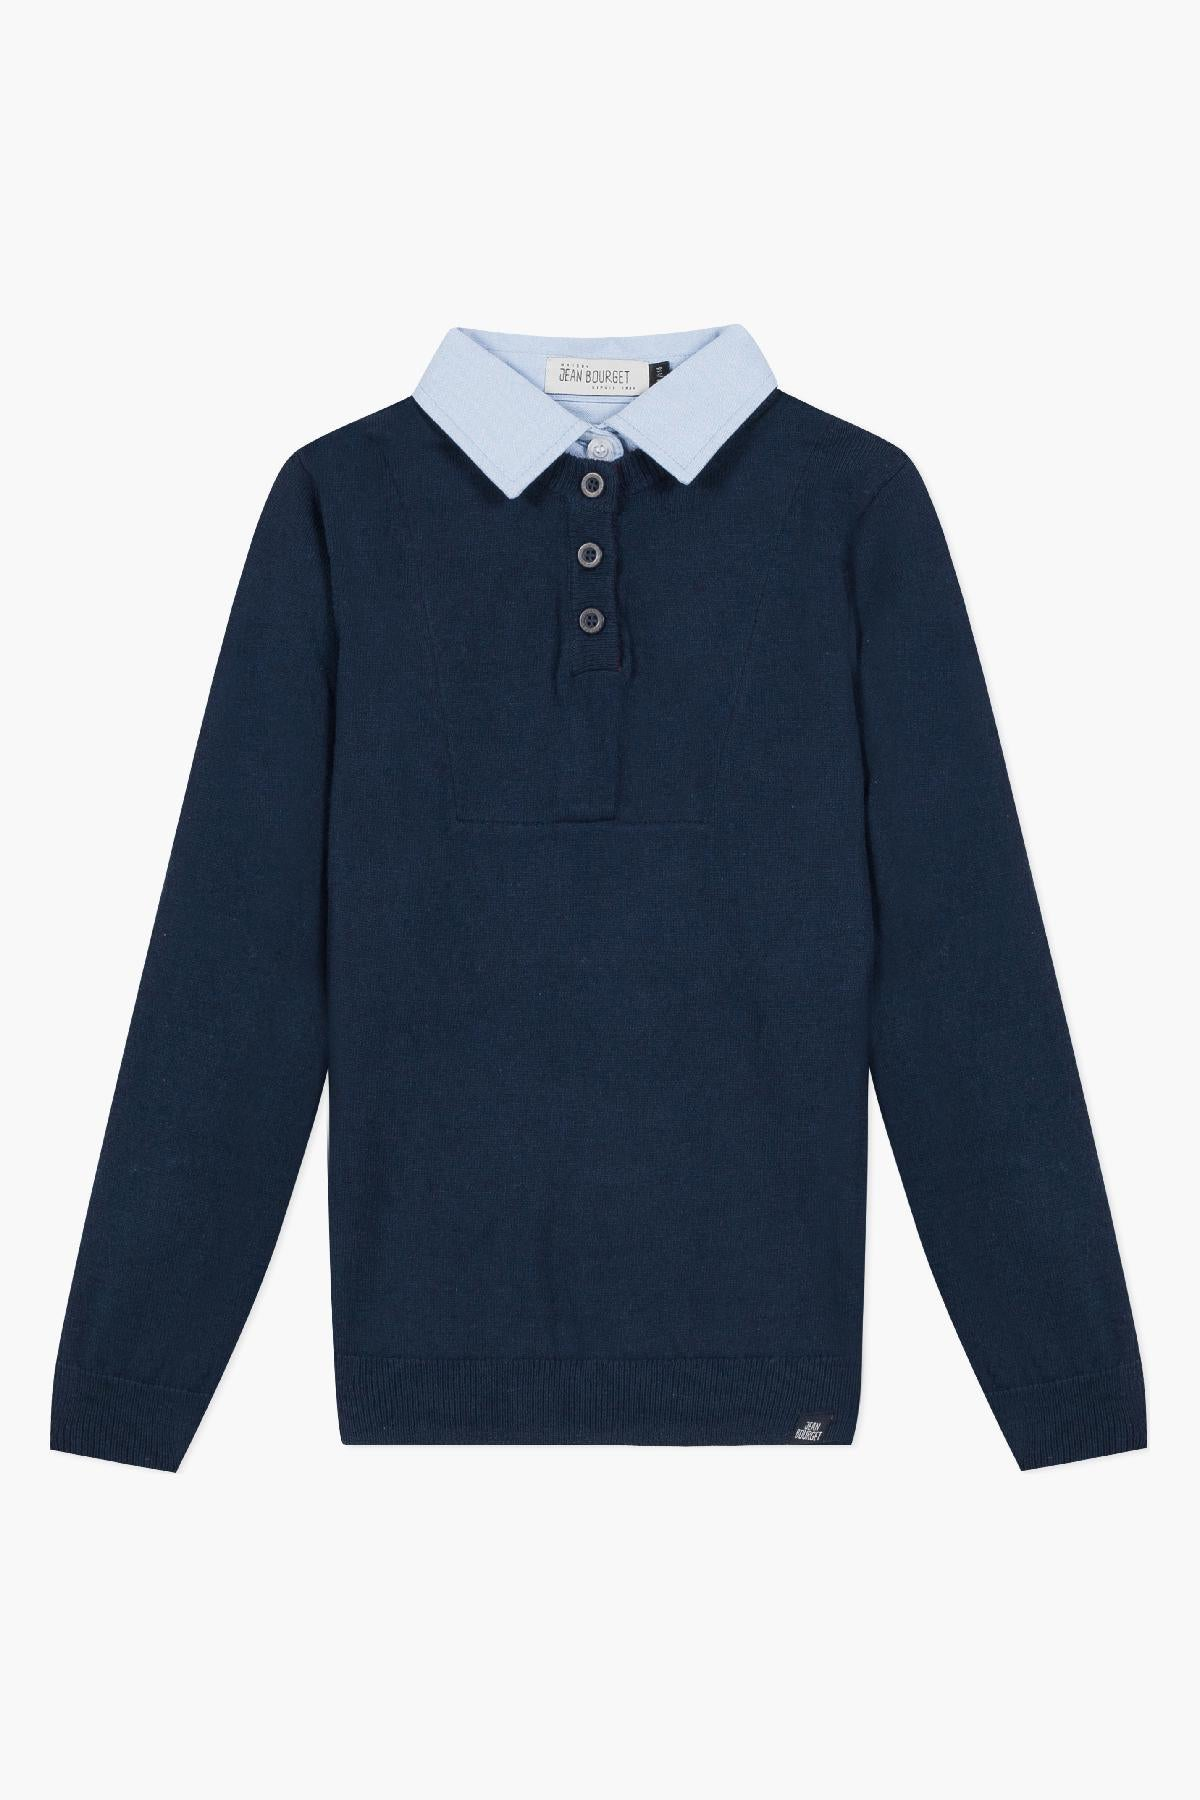 Jean Bourget Marine Blue Polo Sweater